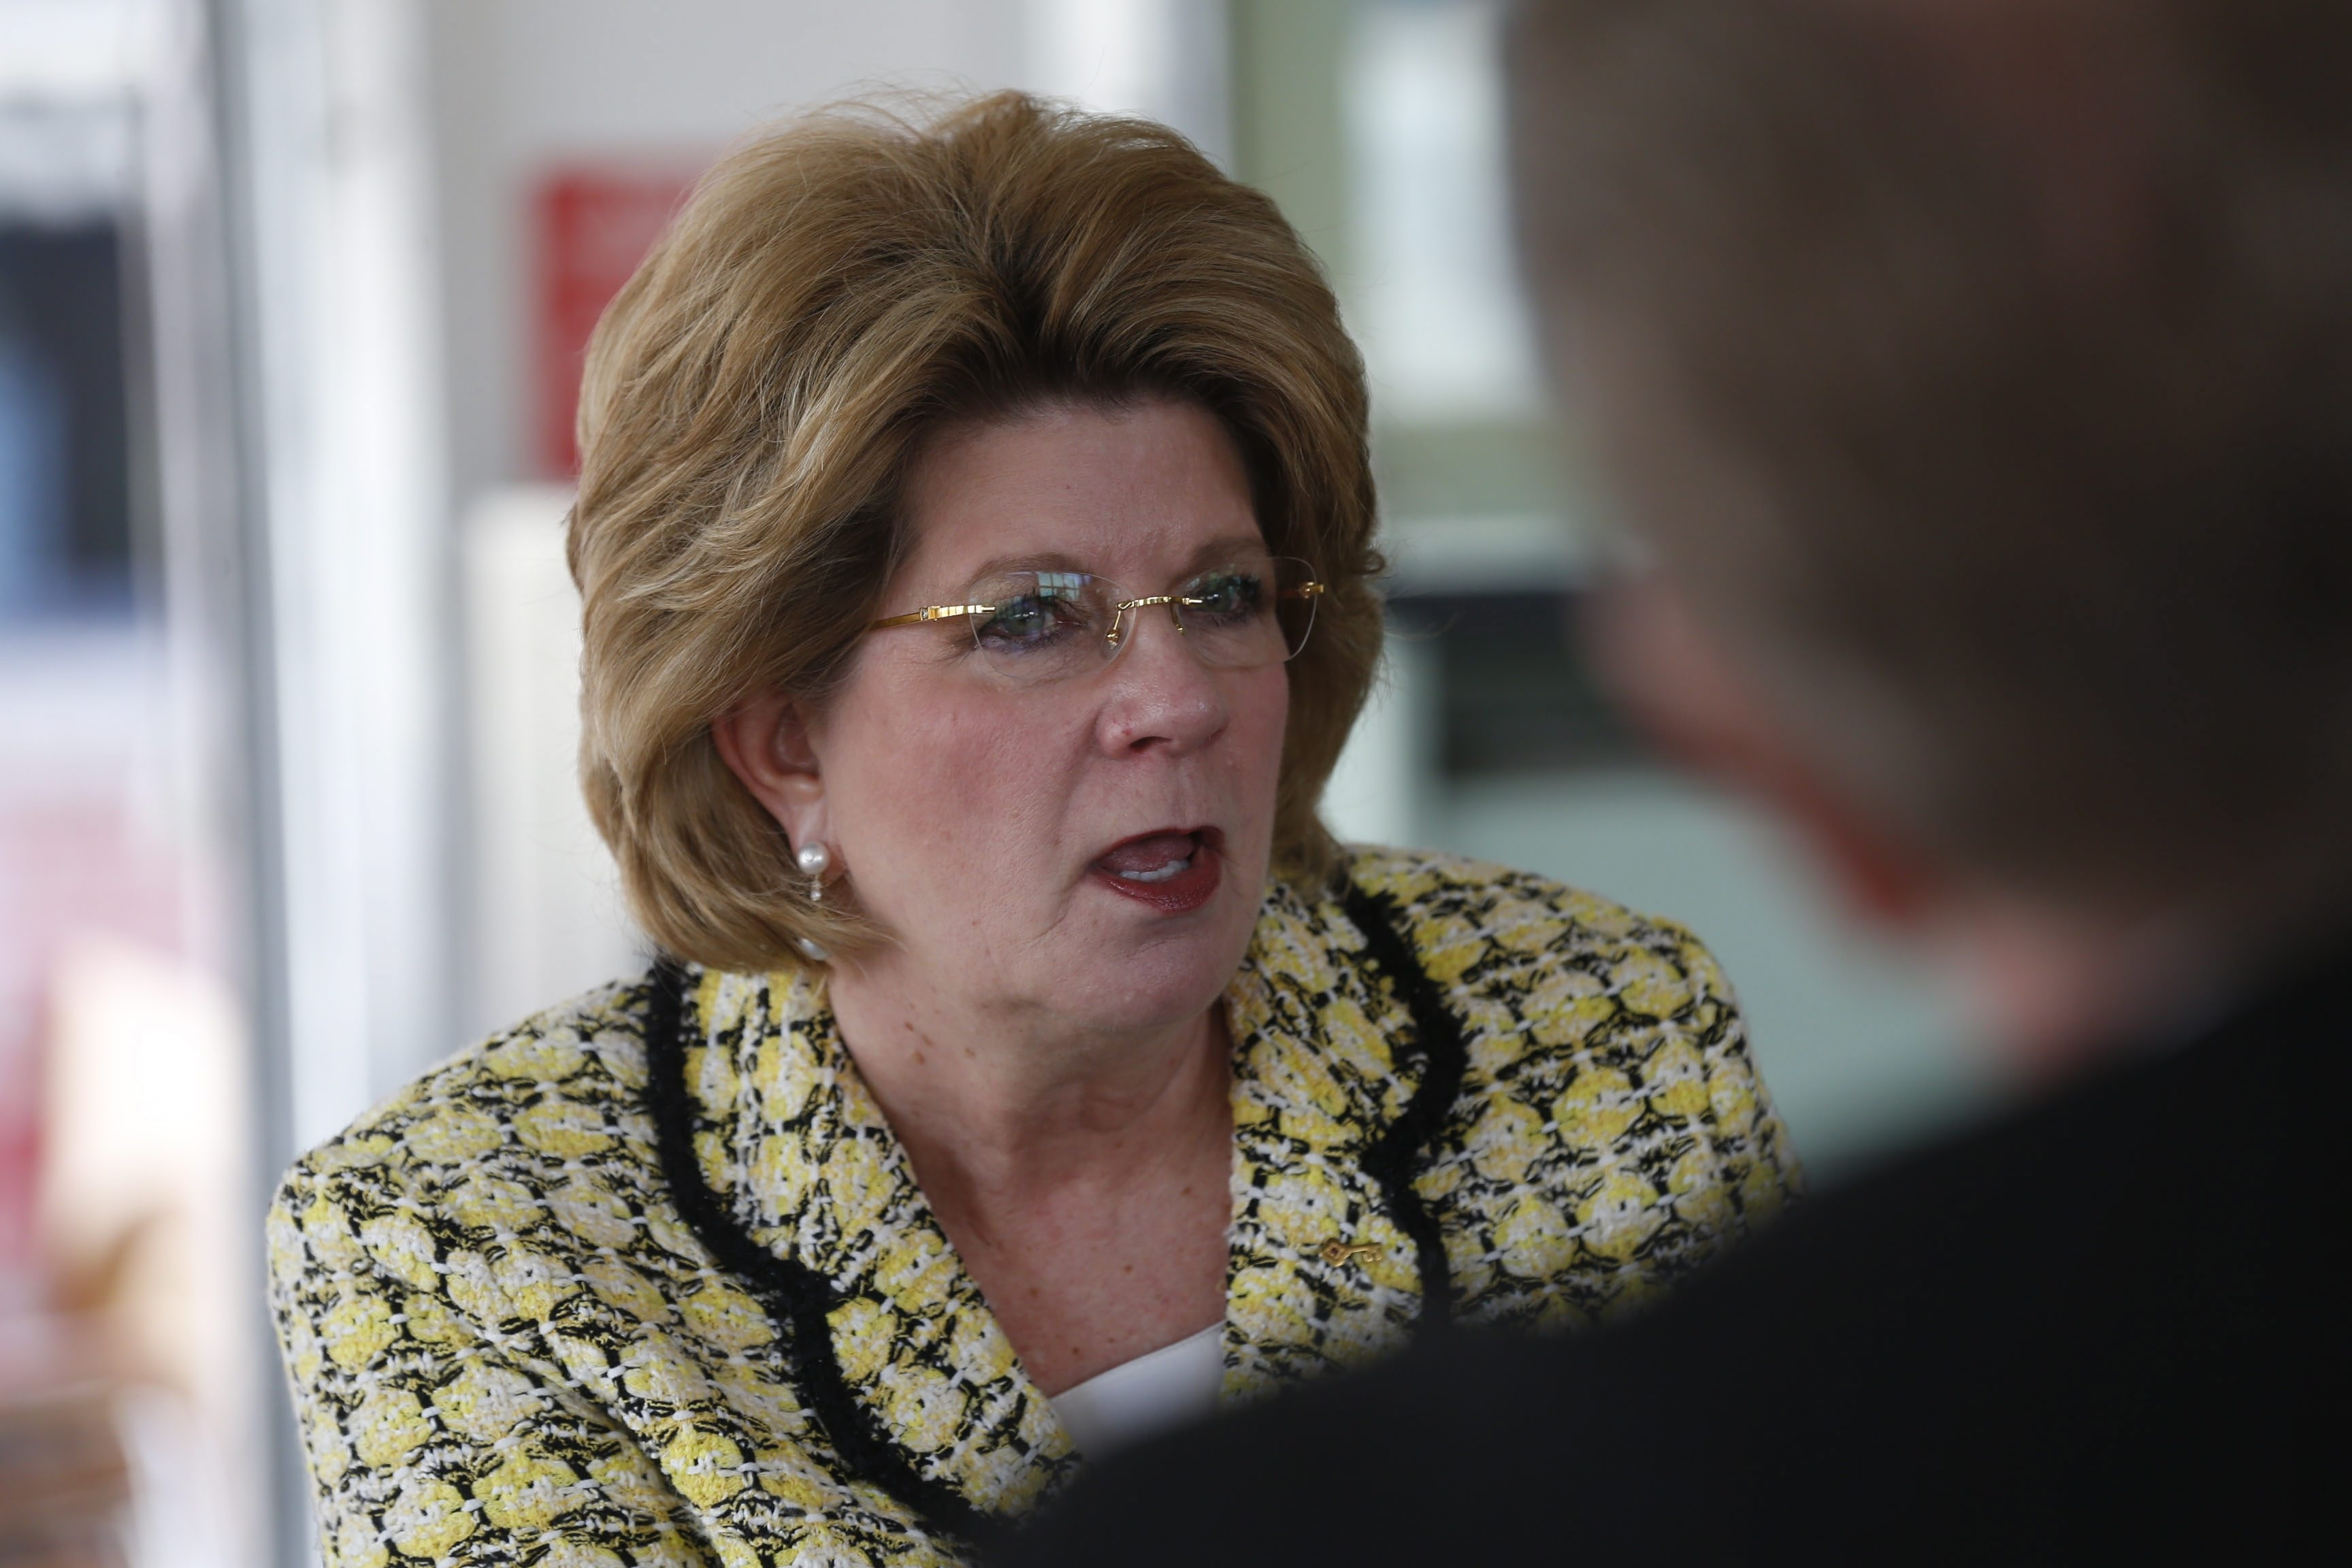 KeyCorp CEO Beth Mooney will oversee the 13th largest bank in the U.S. after the First Niagara deal.